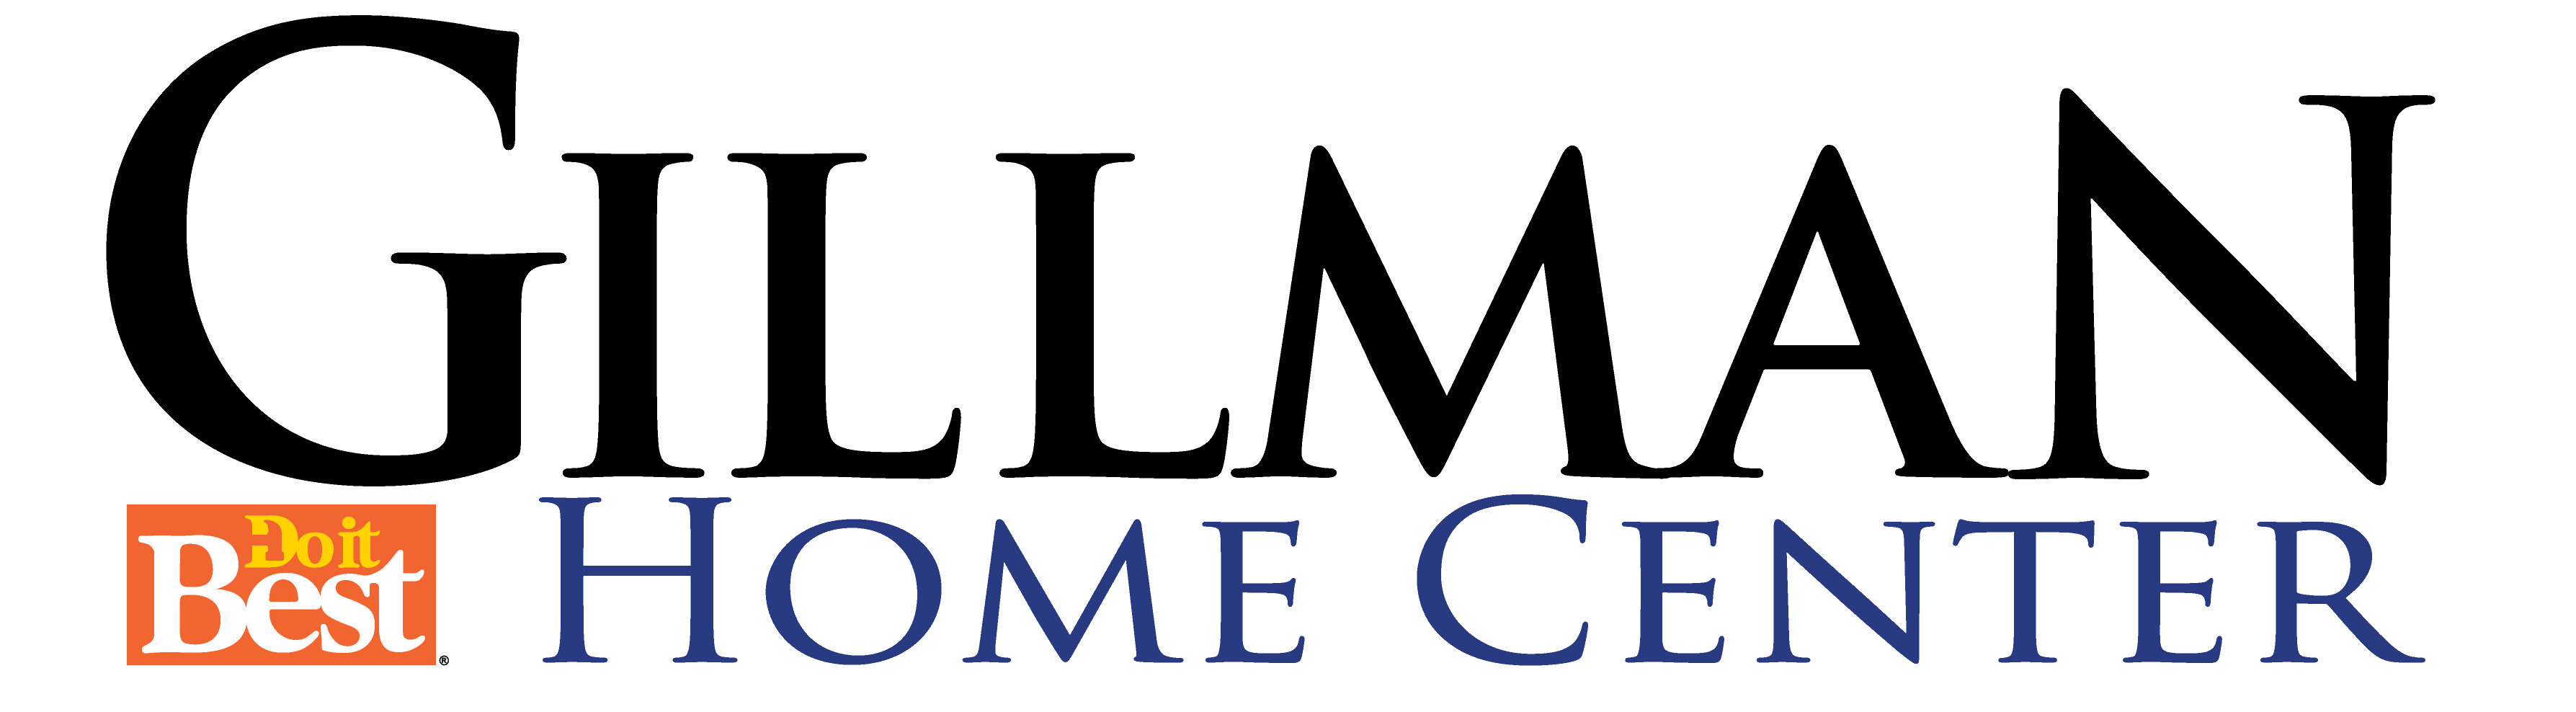 Gillman Home Center logo - 300dpi - tran